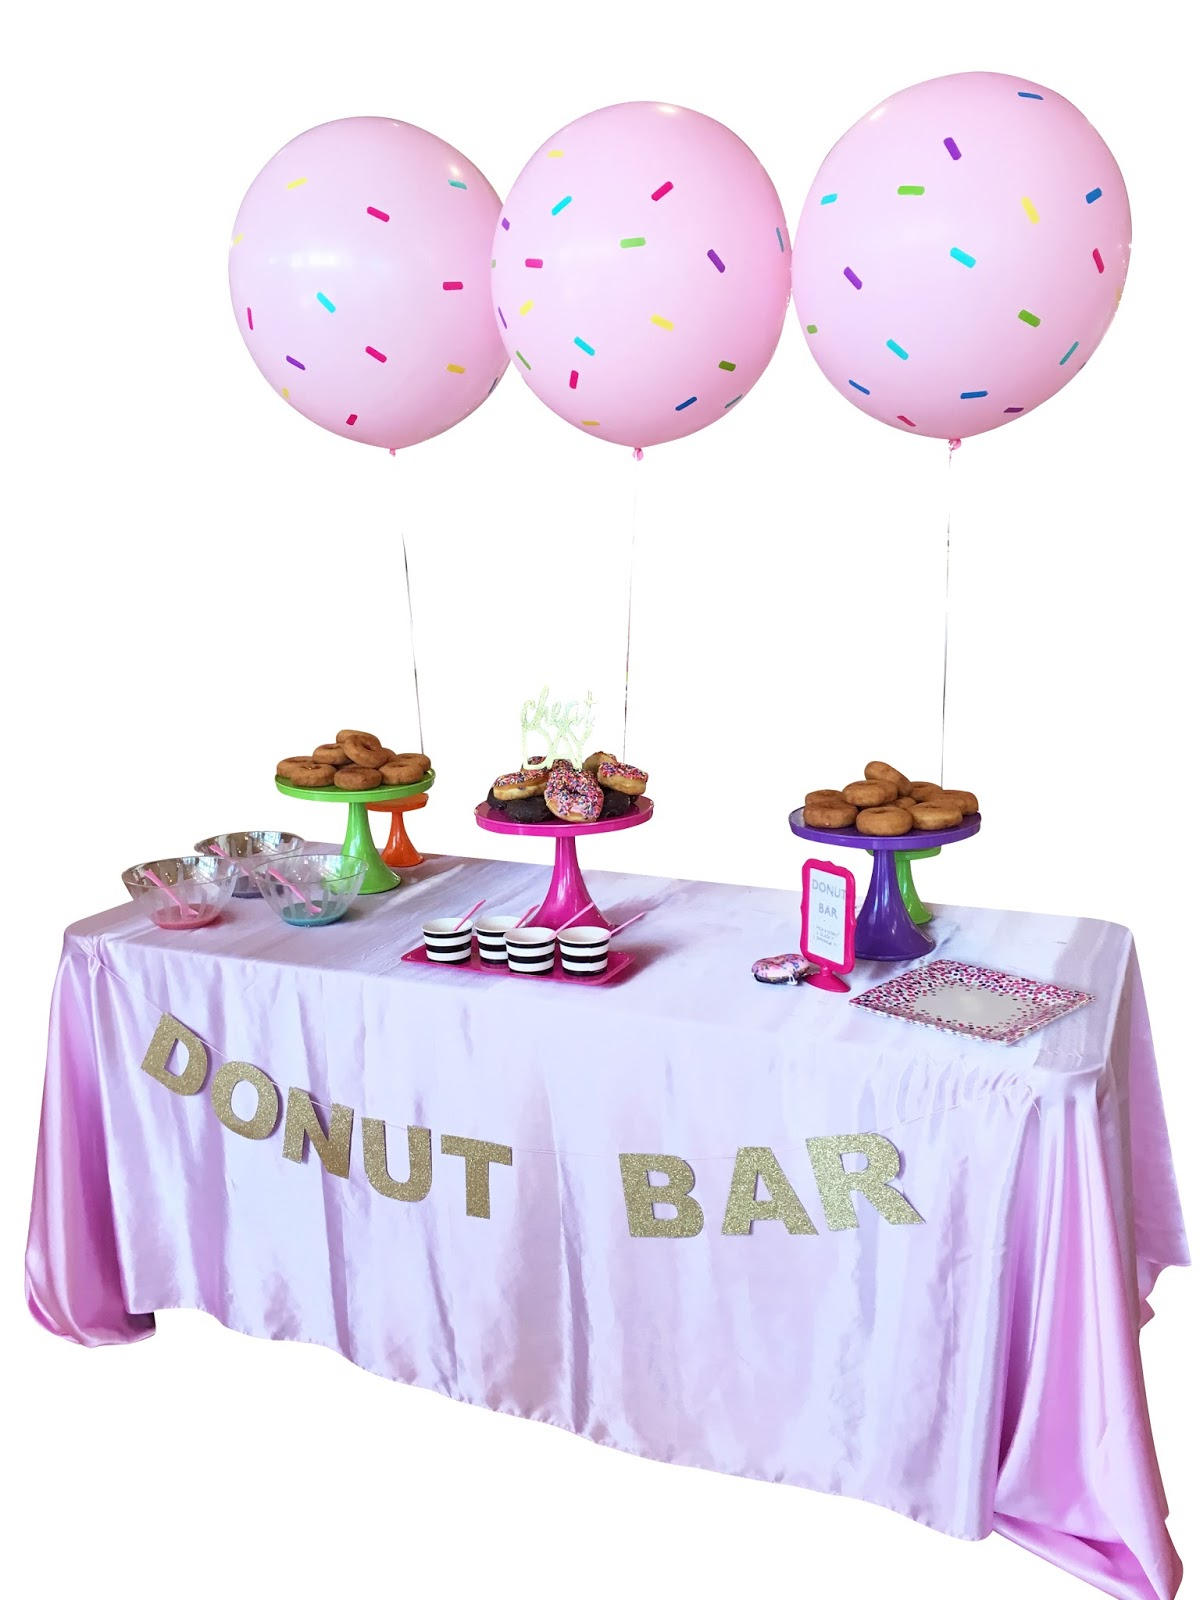 DIY: Interactive Donut Bar for a Party by popular Florida party blogger The Celebration Stylist